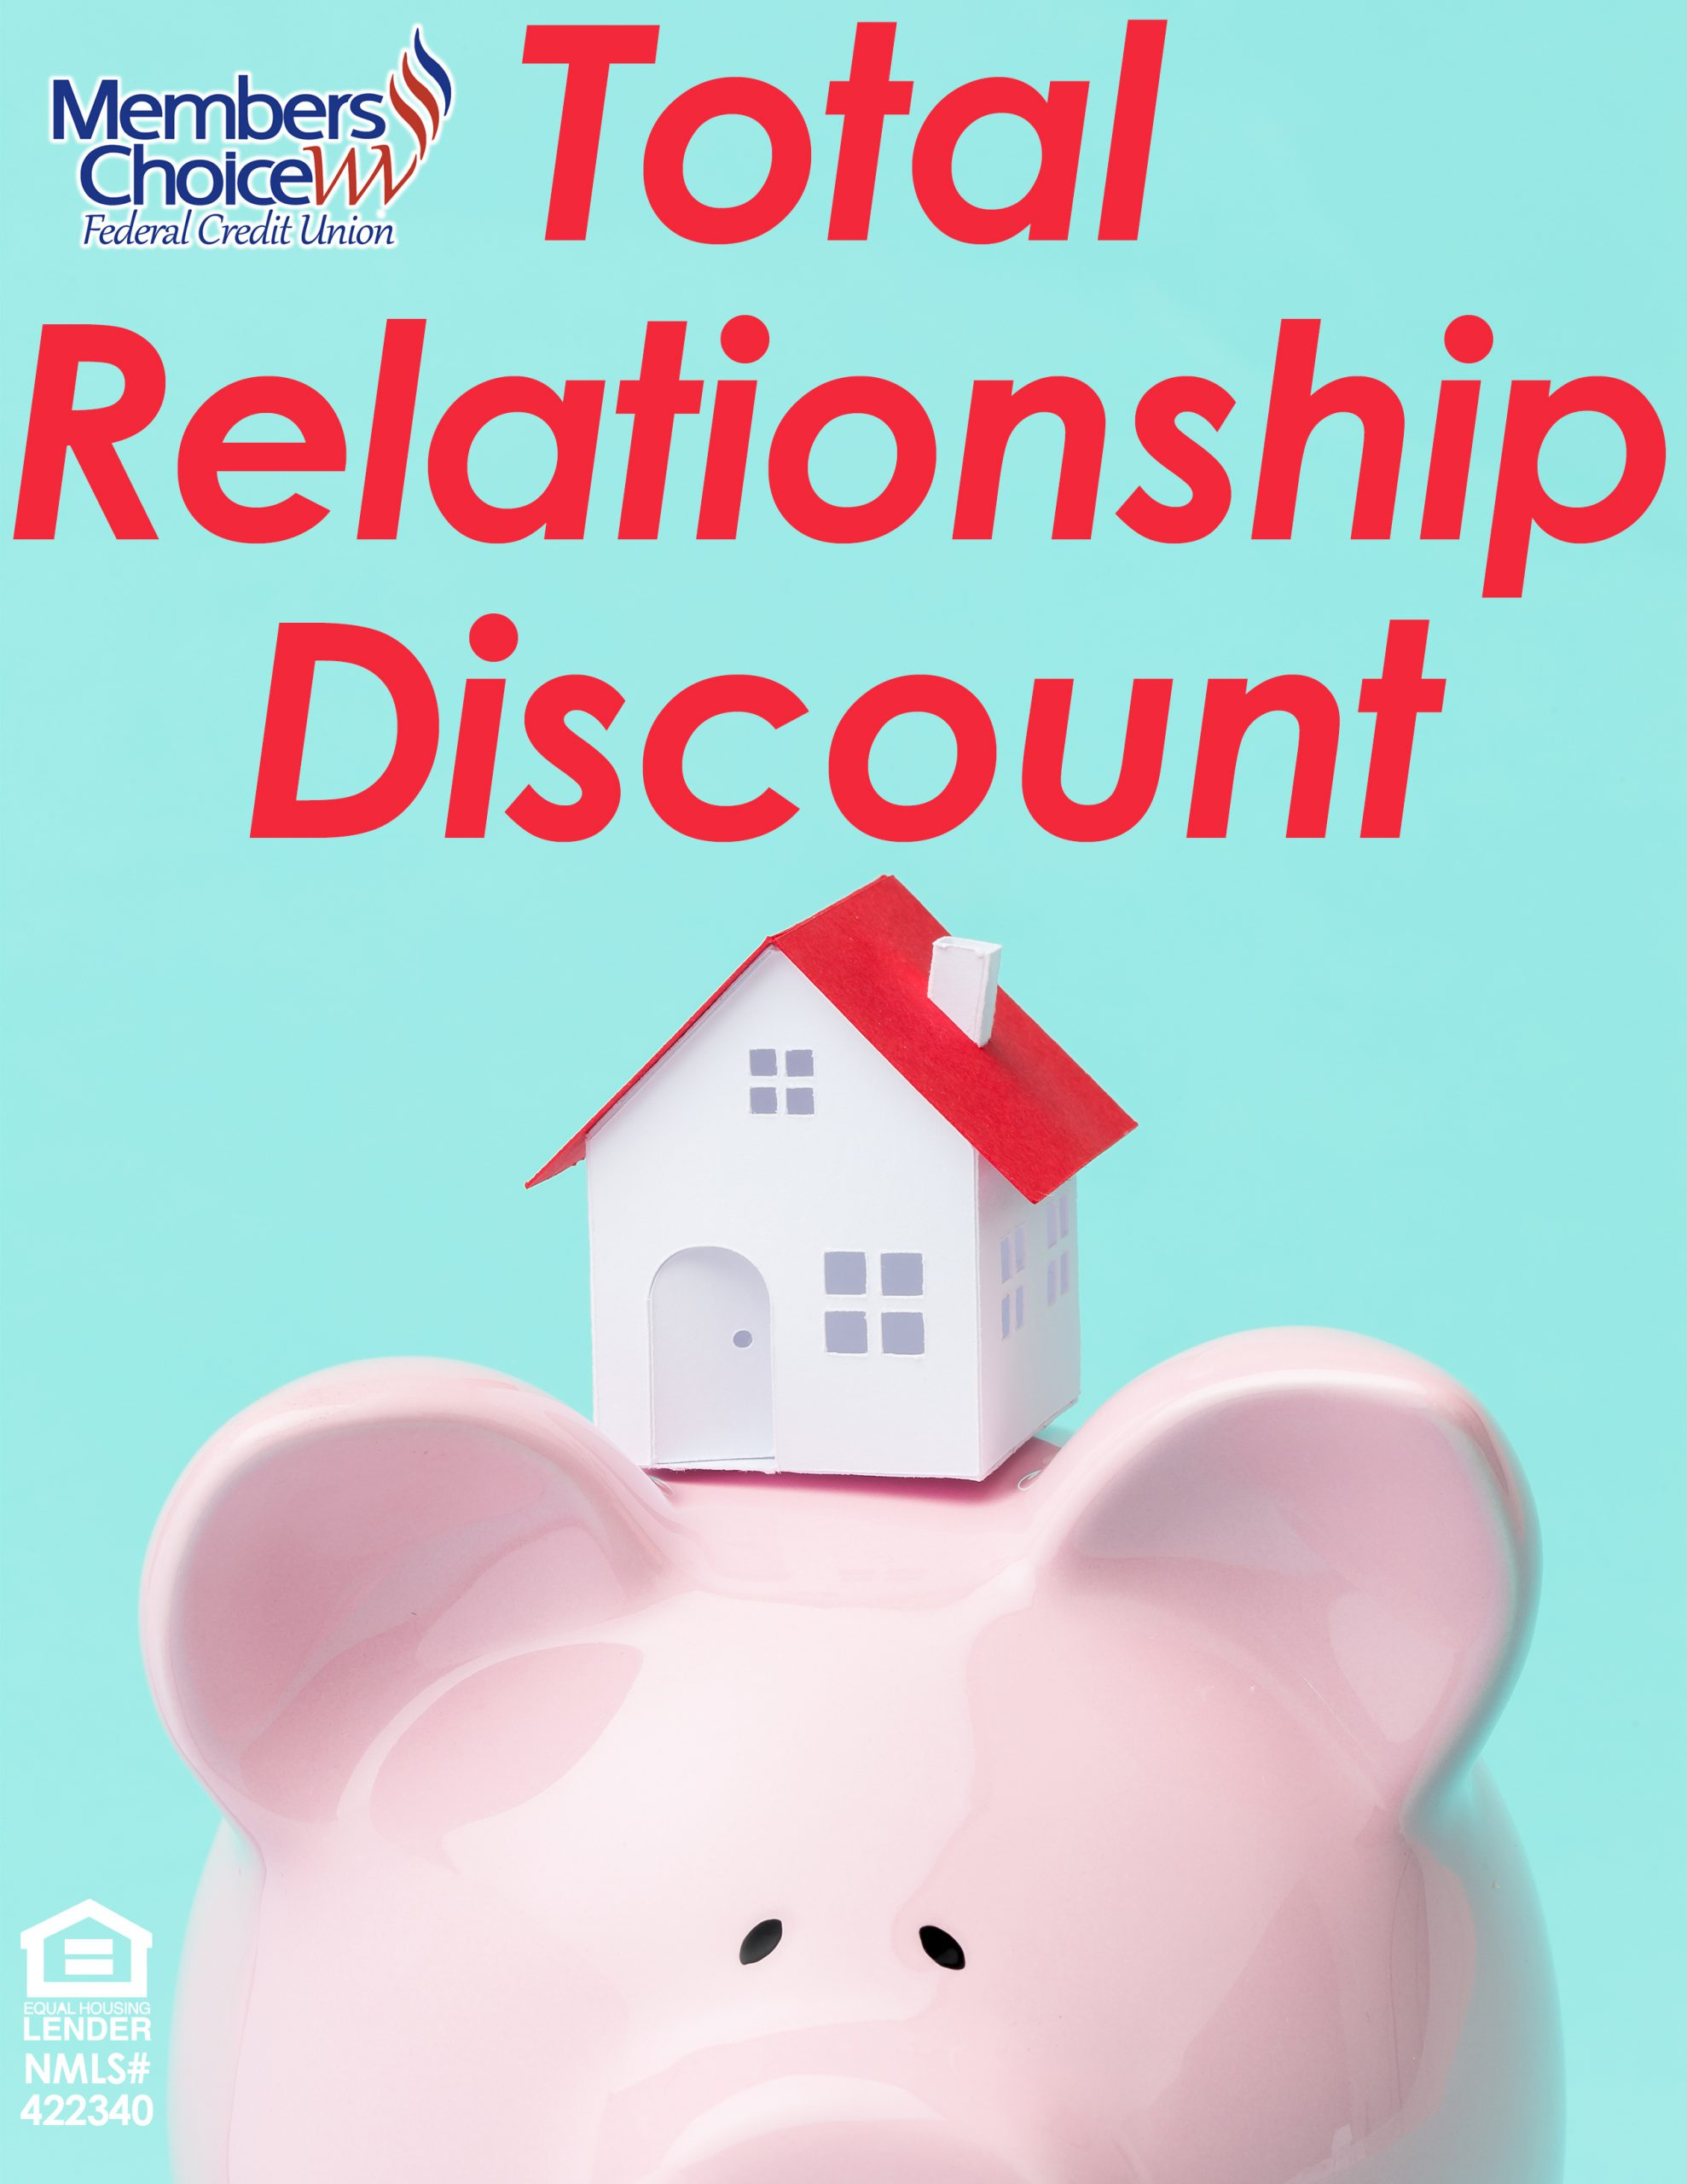 Total Relationship Discount - image